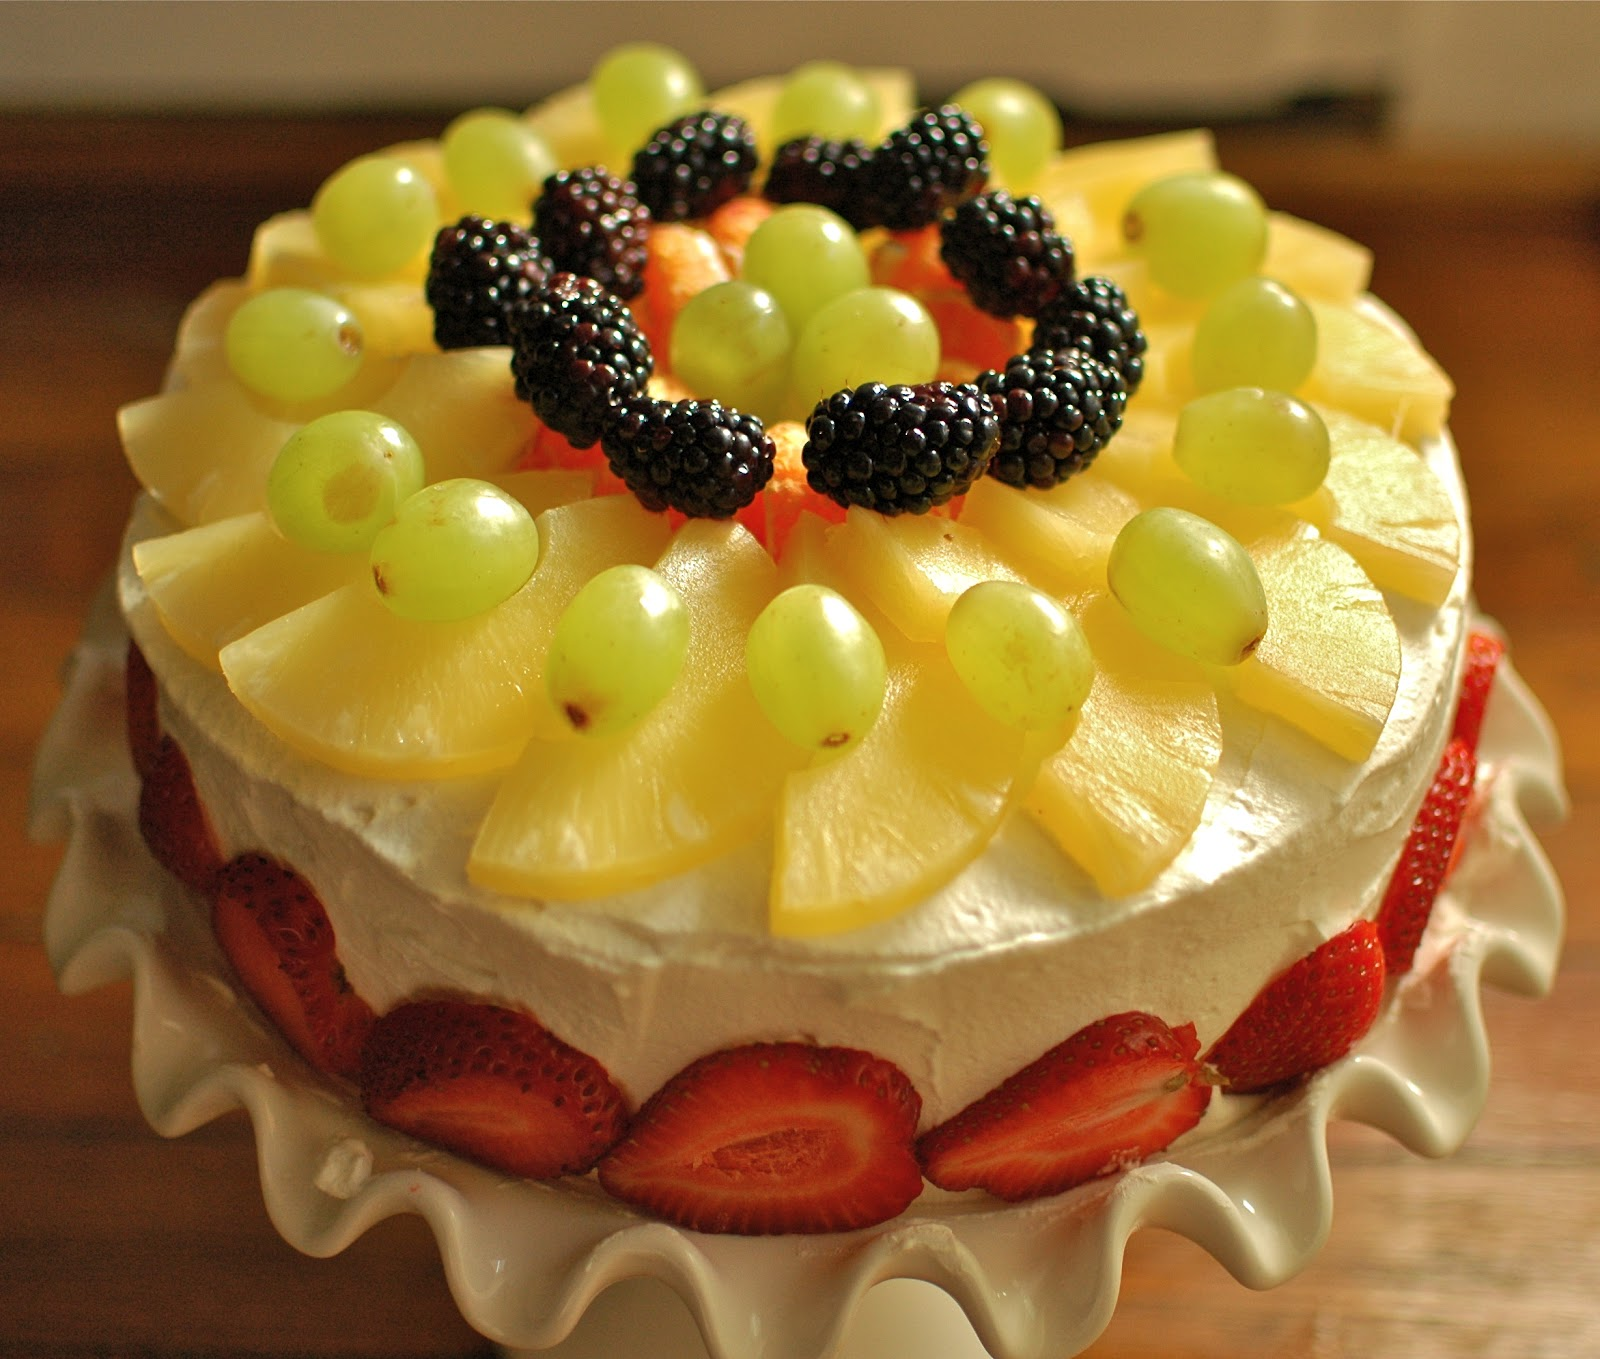 fruits food and cake - photo #2